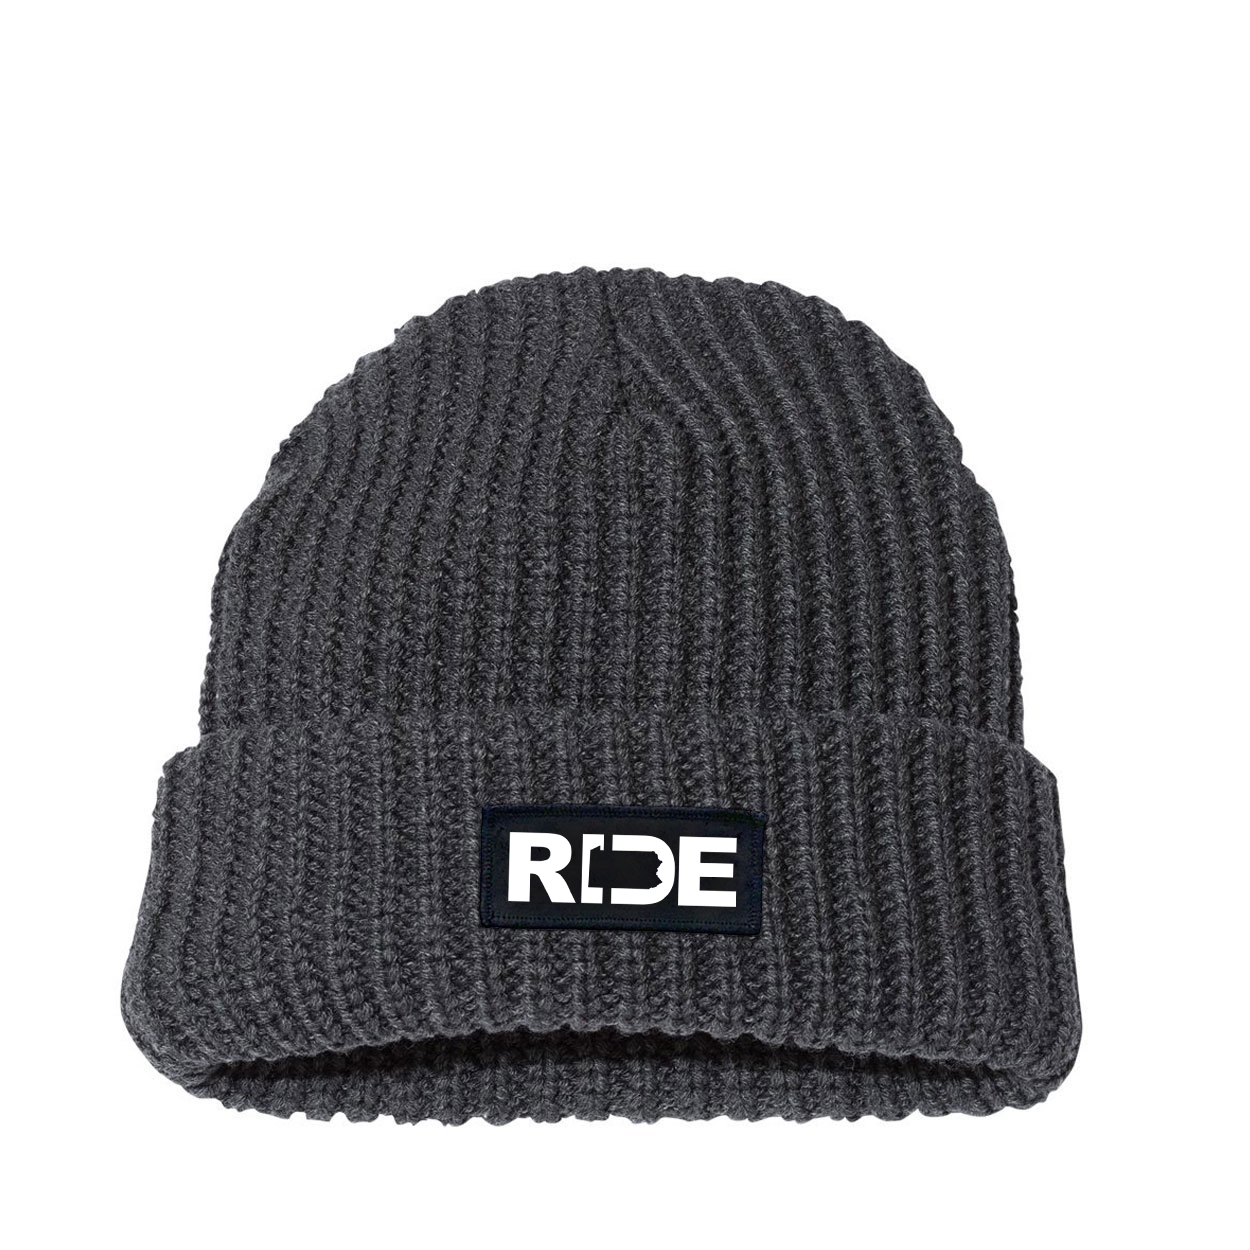 Ride Pennsylvania Night Out Woven Patch Roll Up Jumbo Chunky Knit Beanie Charcoal (White Logo)